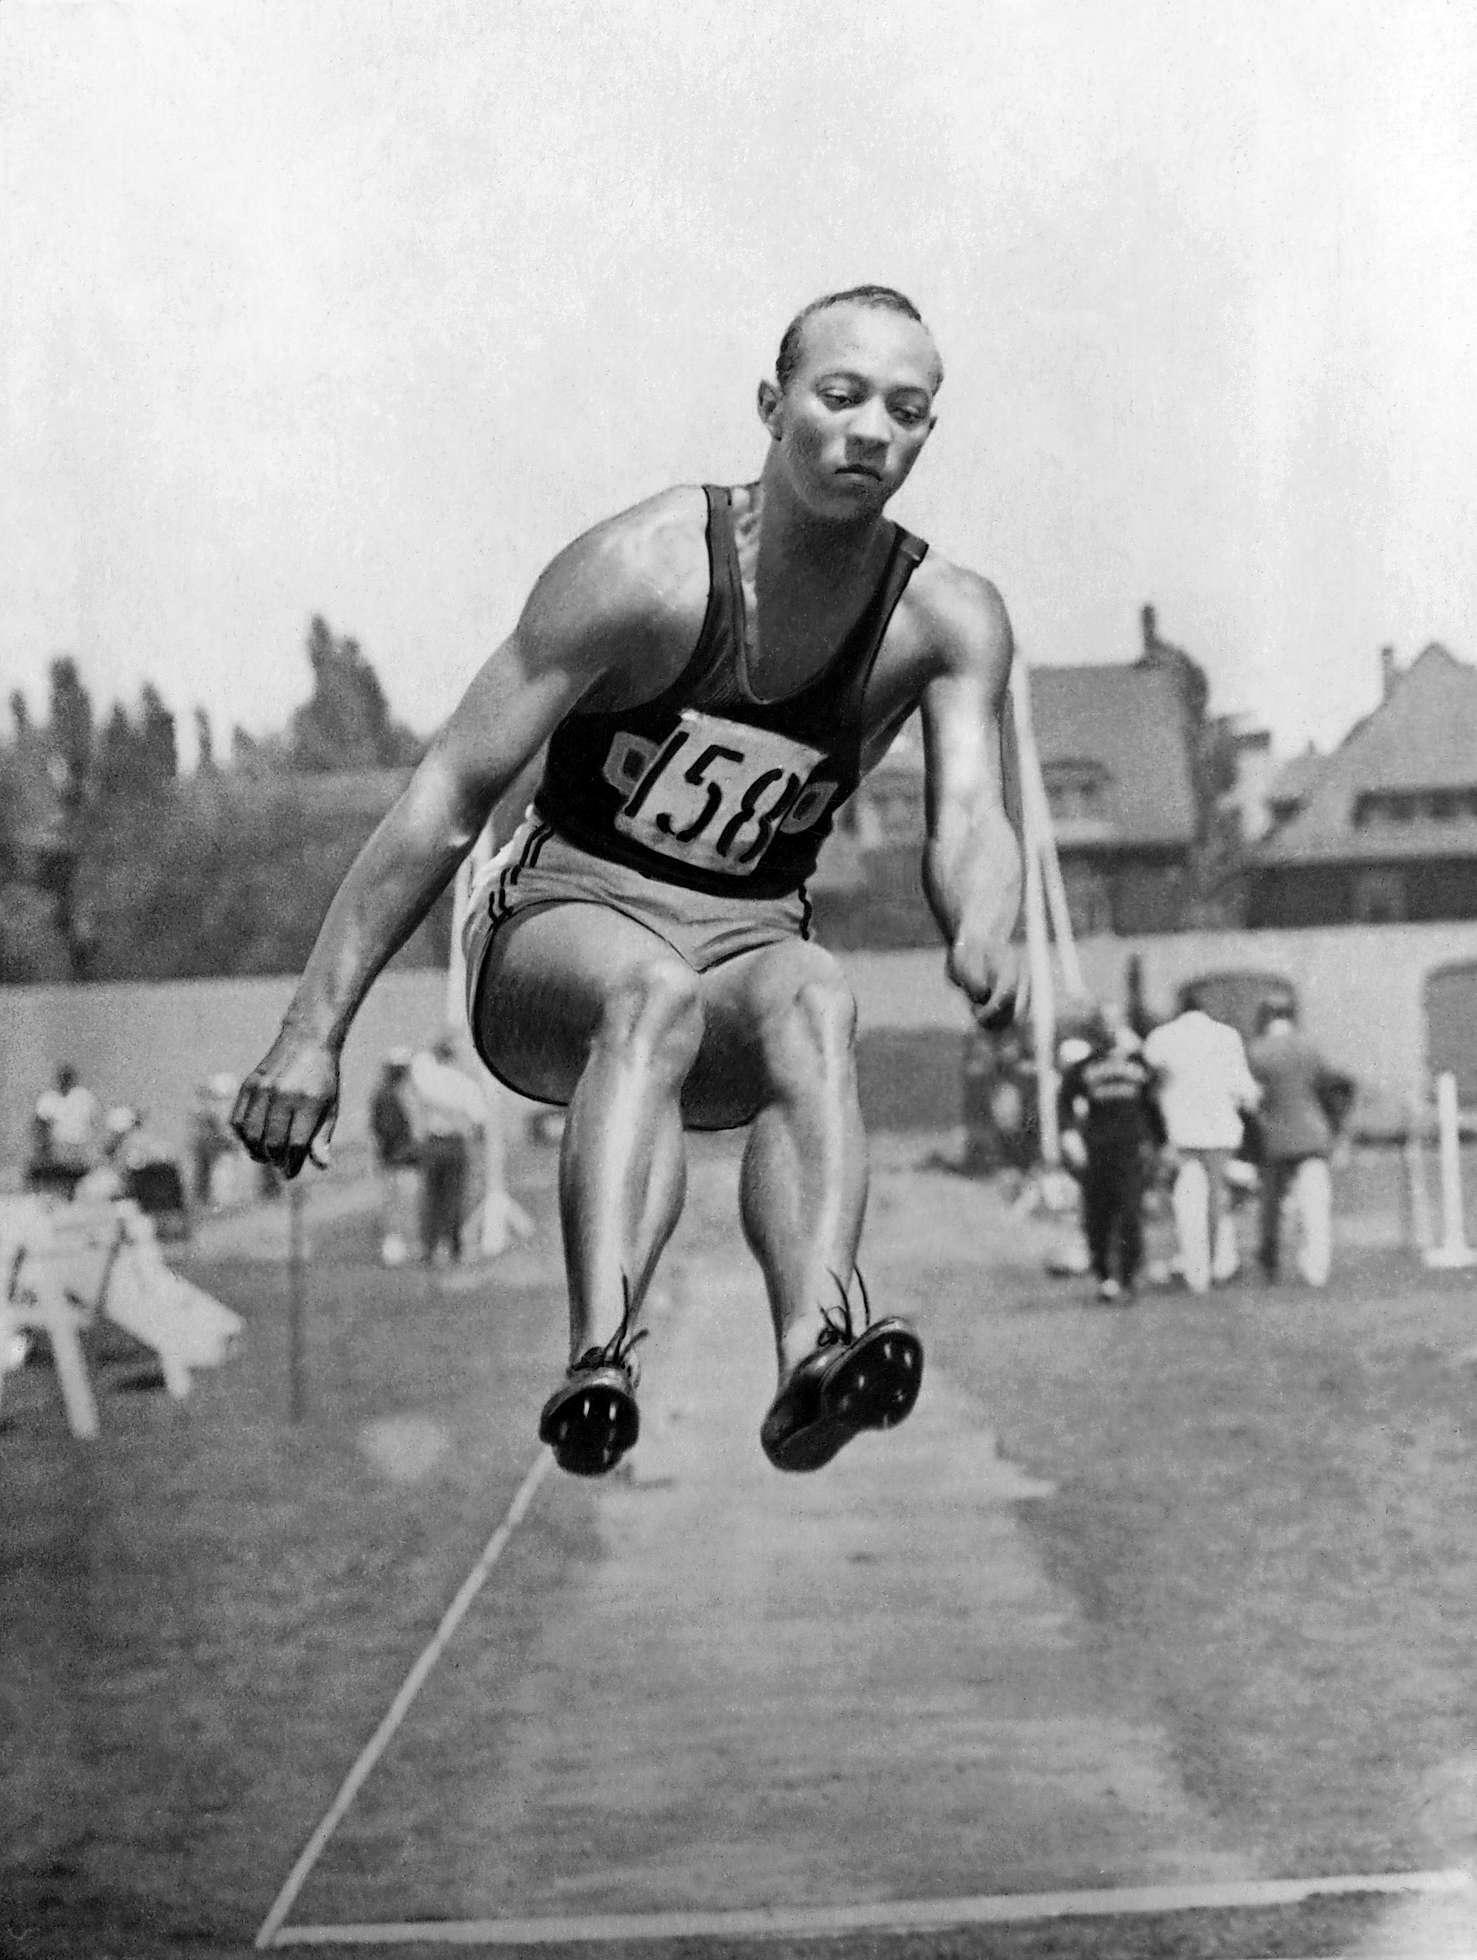 jesse owens essay Read this essay on jesse owens come browse our large digital warehouse of free sample essays get the knowledge you need in order to.